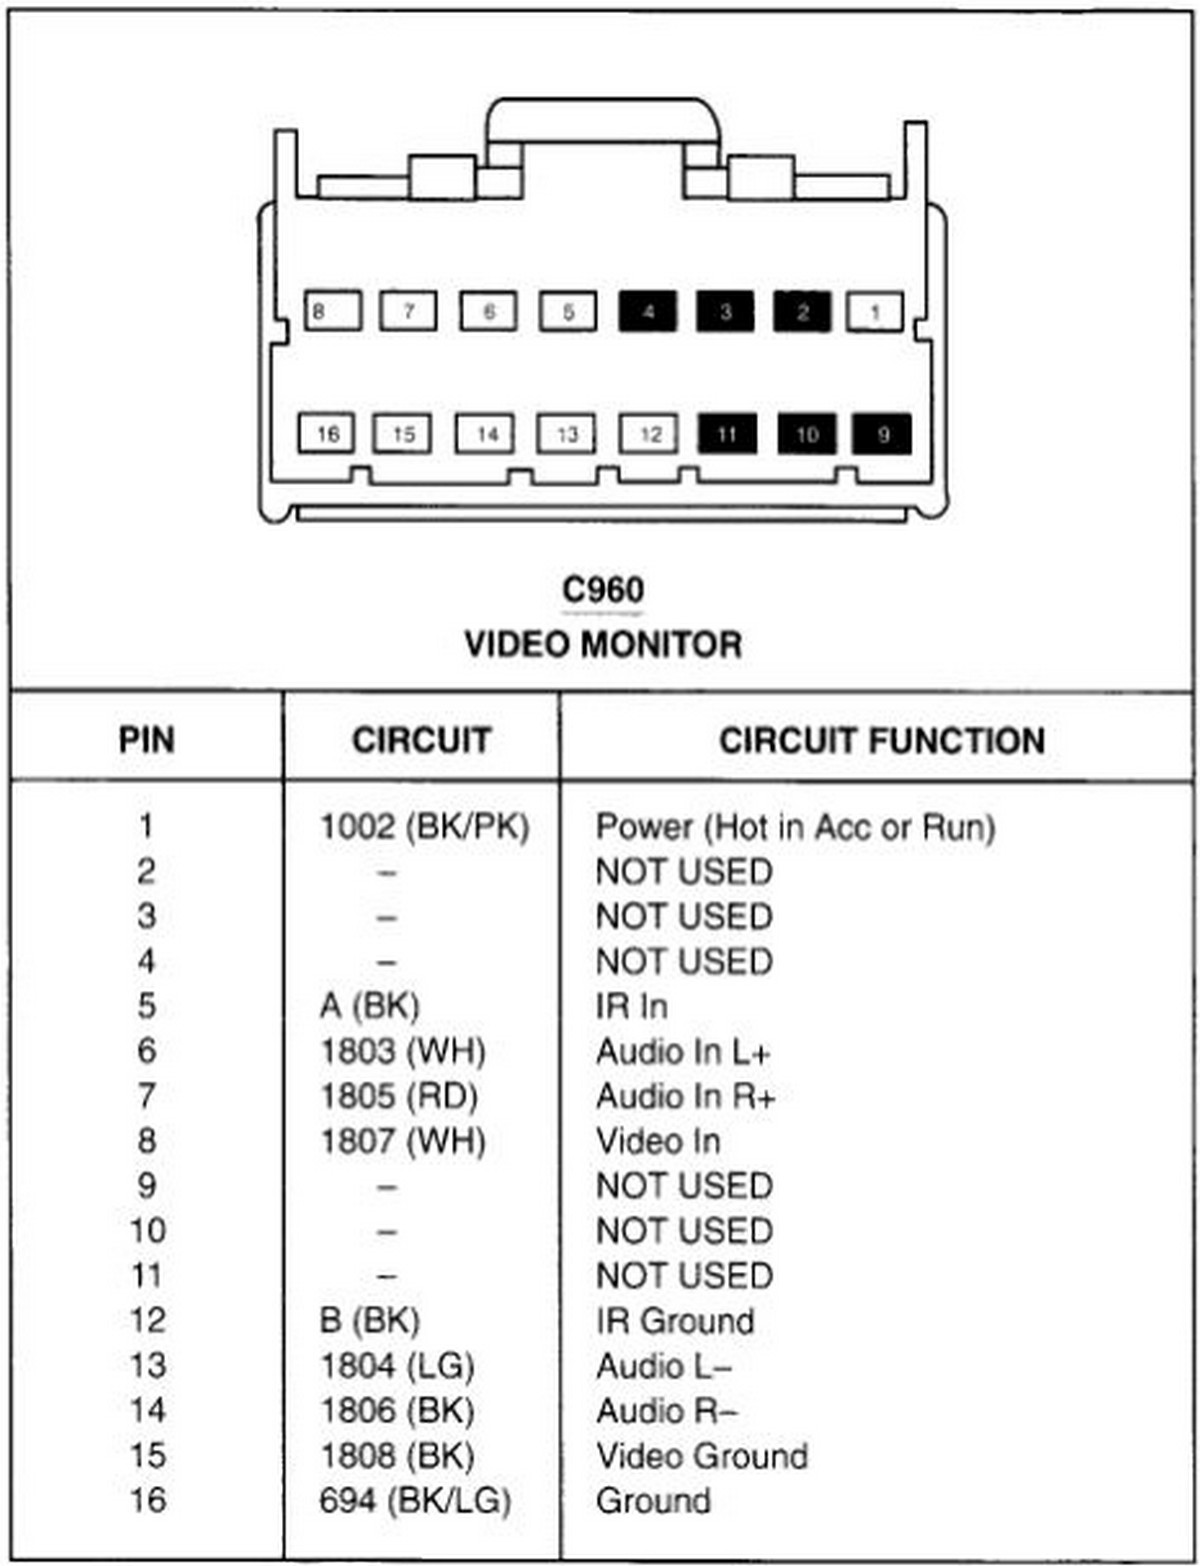 Ford Car Radio Stereo Audio Wiring Diagram Autoradio Connector Wire 1997 Explorer Eddie Bauer Installation Schematic Schema Esquema De Conexiones Stecker Konektor Connecteur Cable